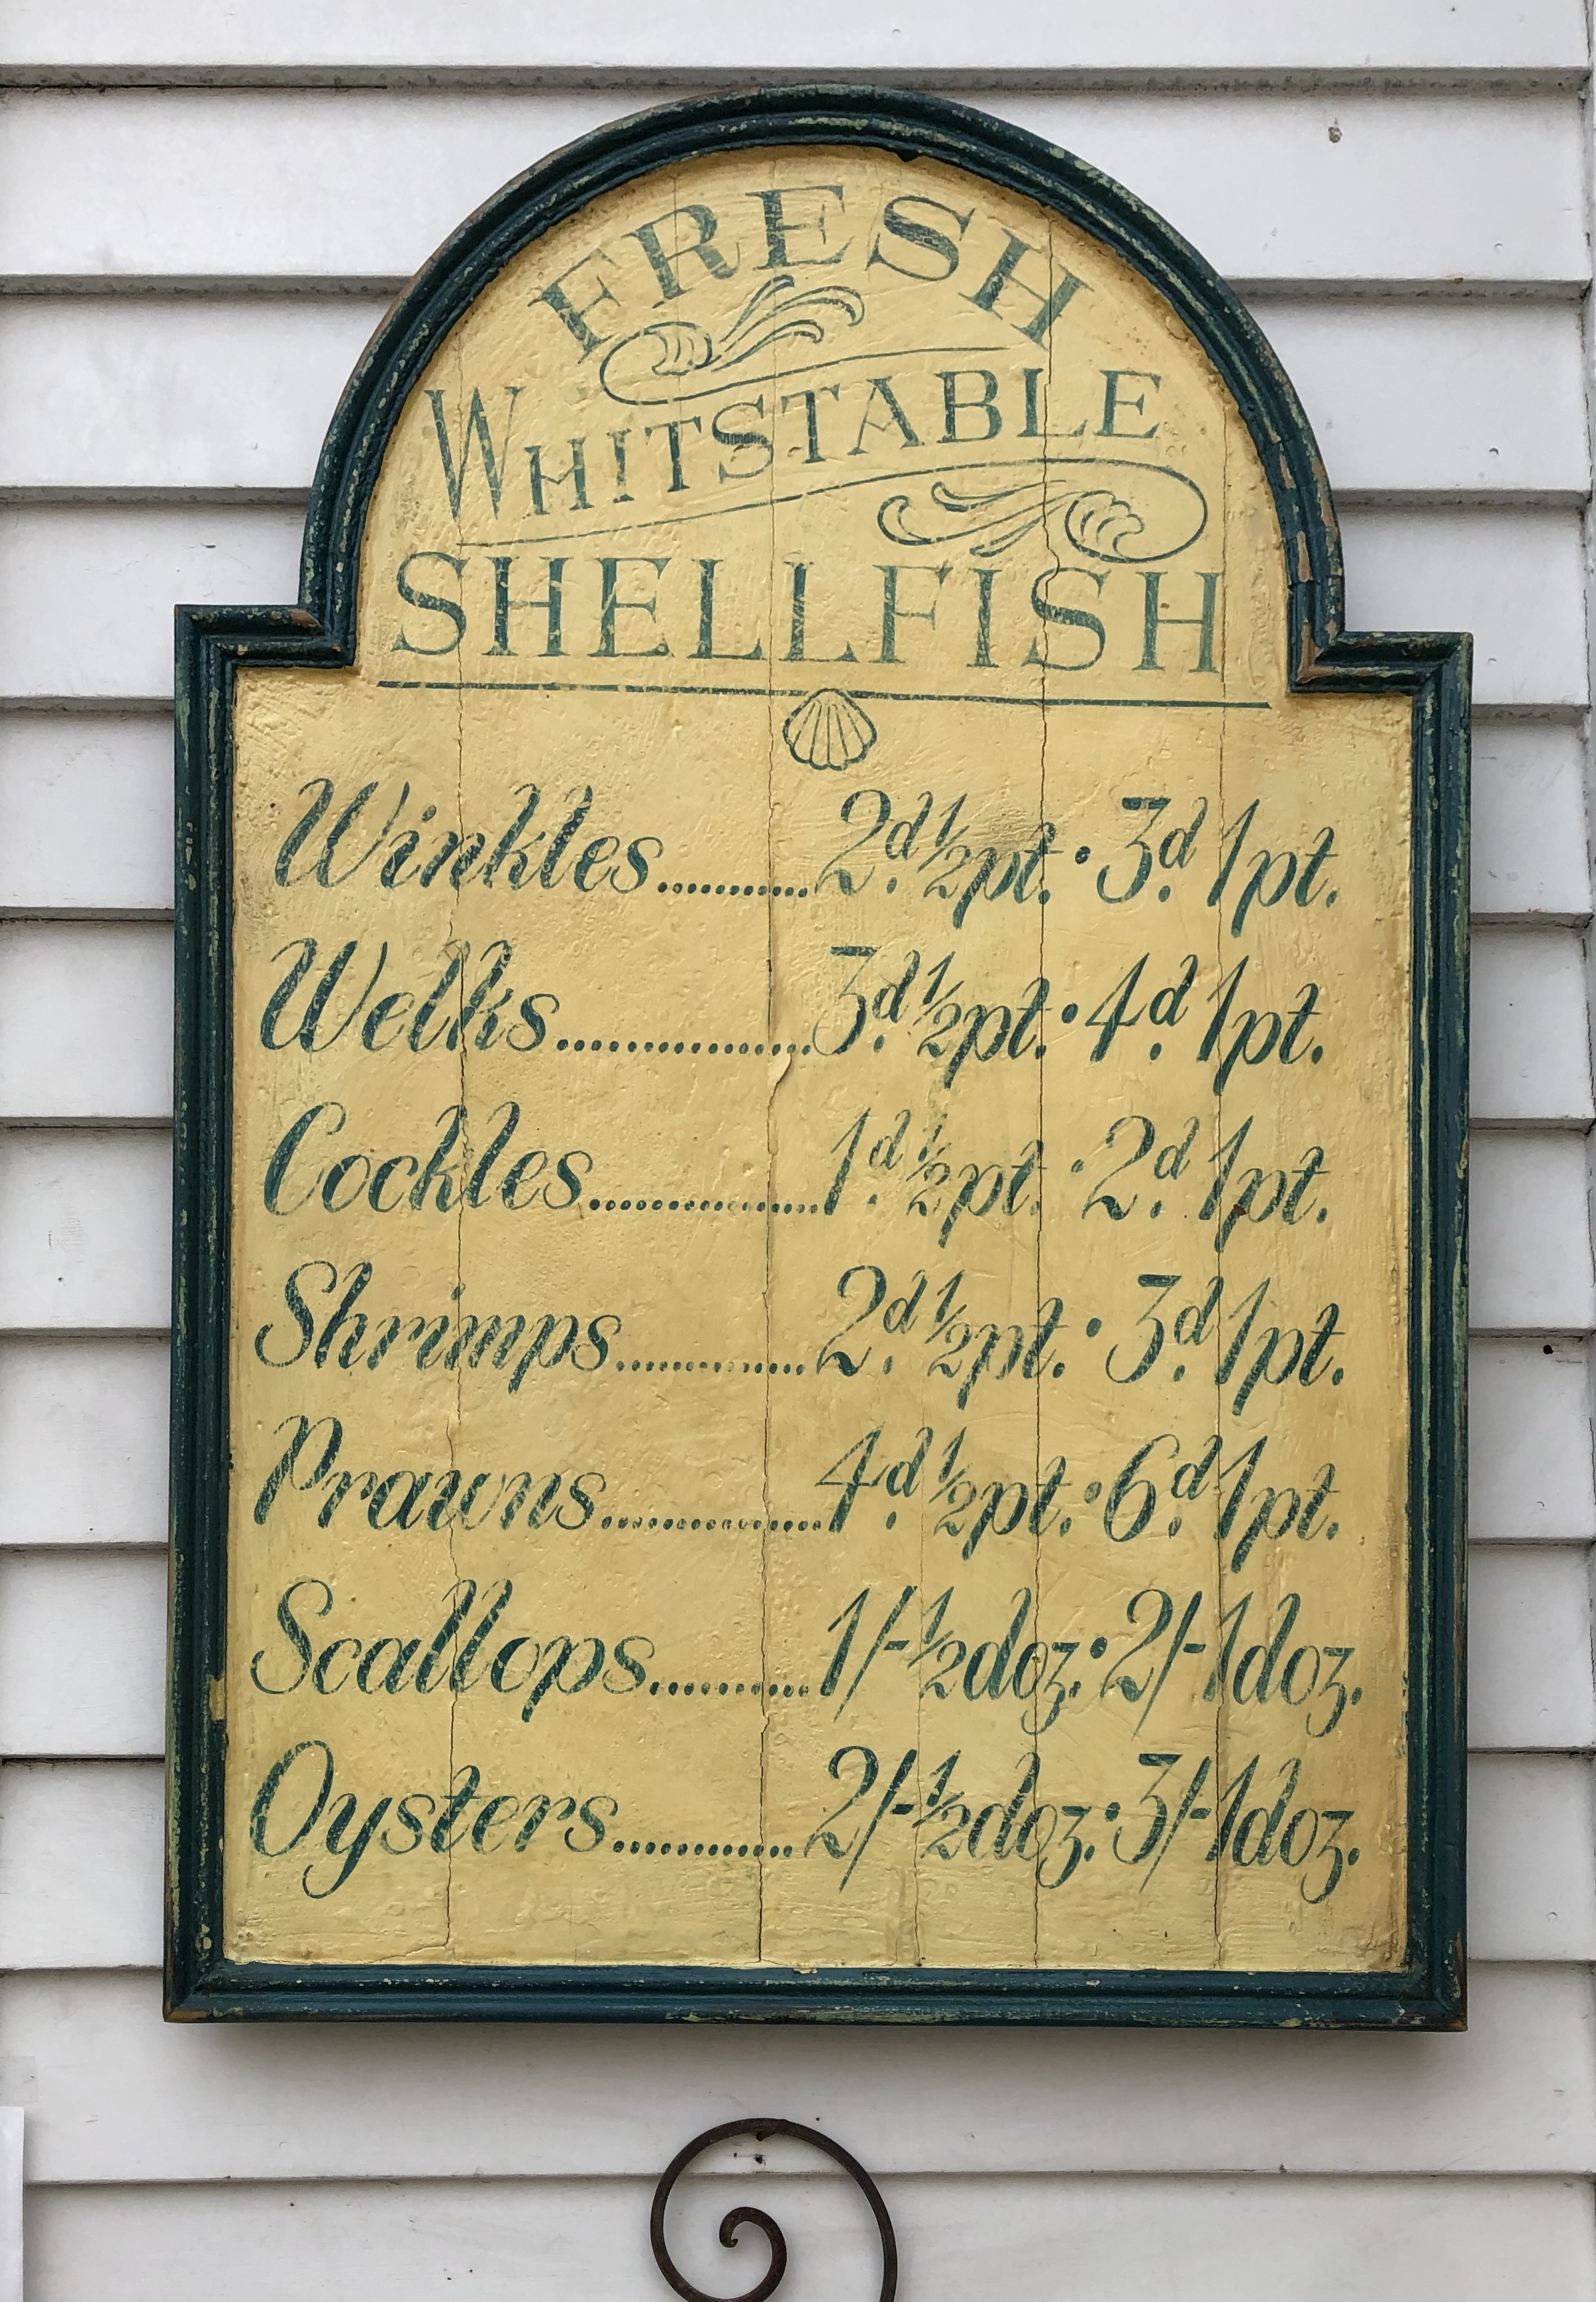 073020-antique-seafood-sign